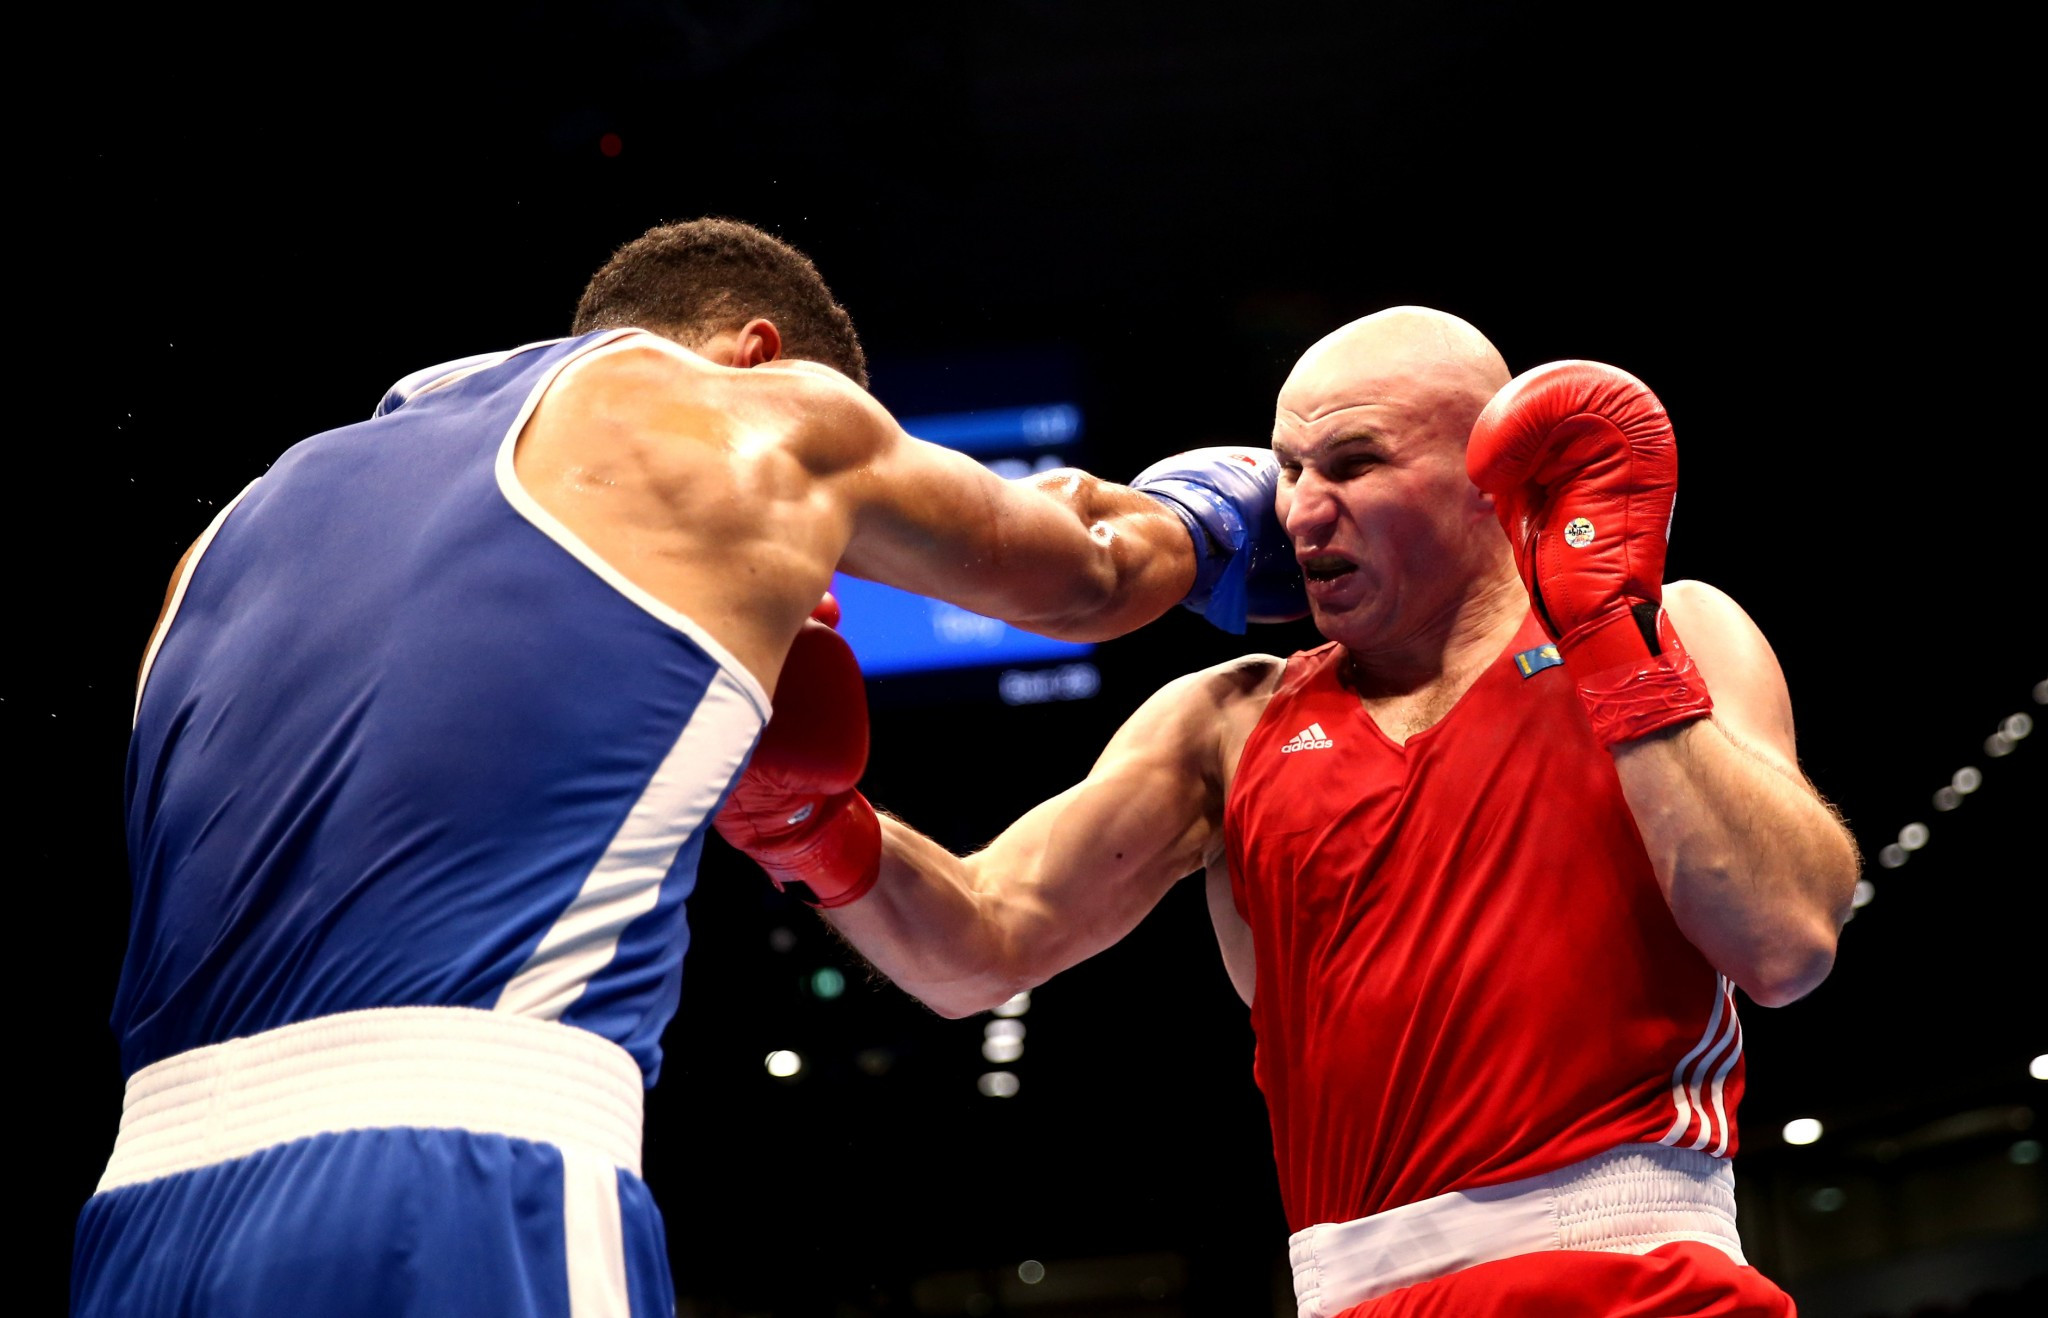 The Interim Management Committee claim the actions of executive director William Louis-Marie have put the very future of AIBA at risk, which is why they want him suspended ©Getty Images